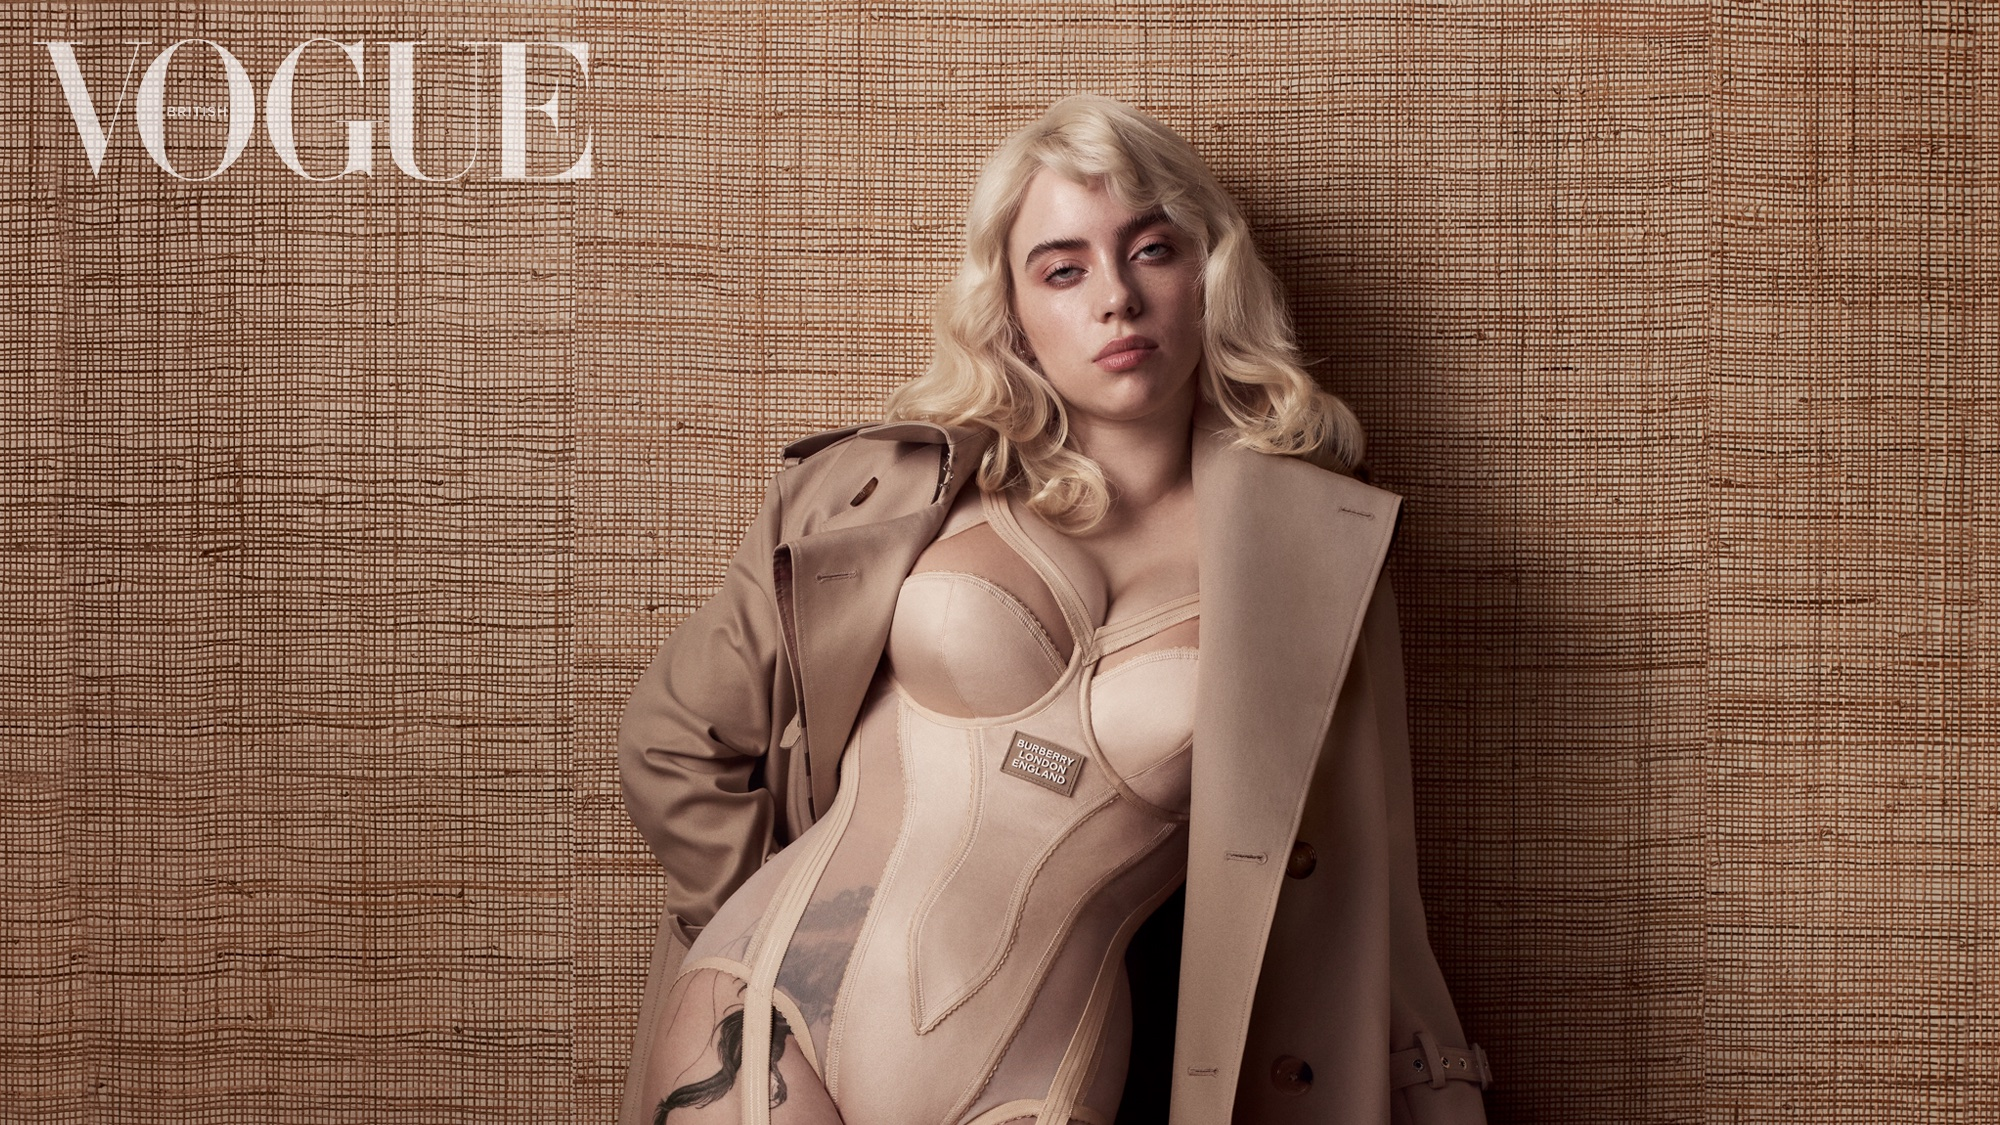 Billie Eilish looks incredible gracing the cover of British Vogue